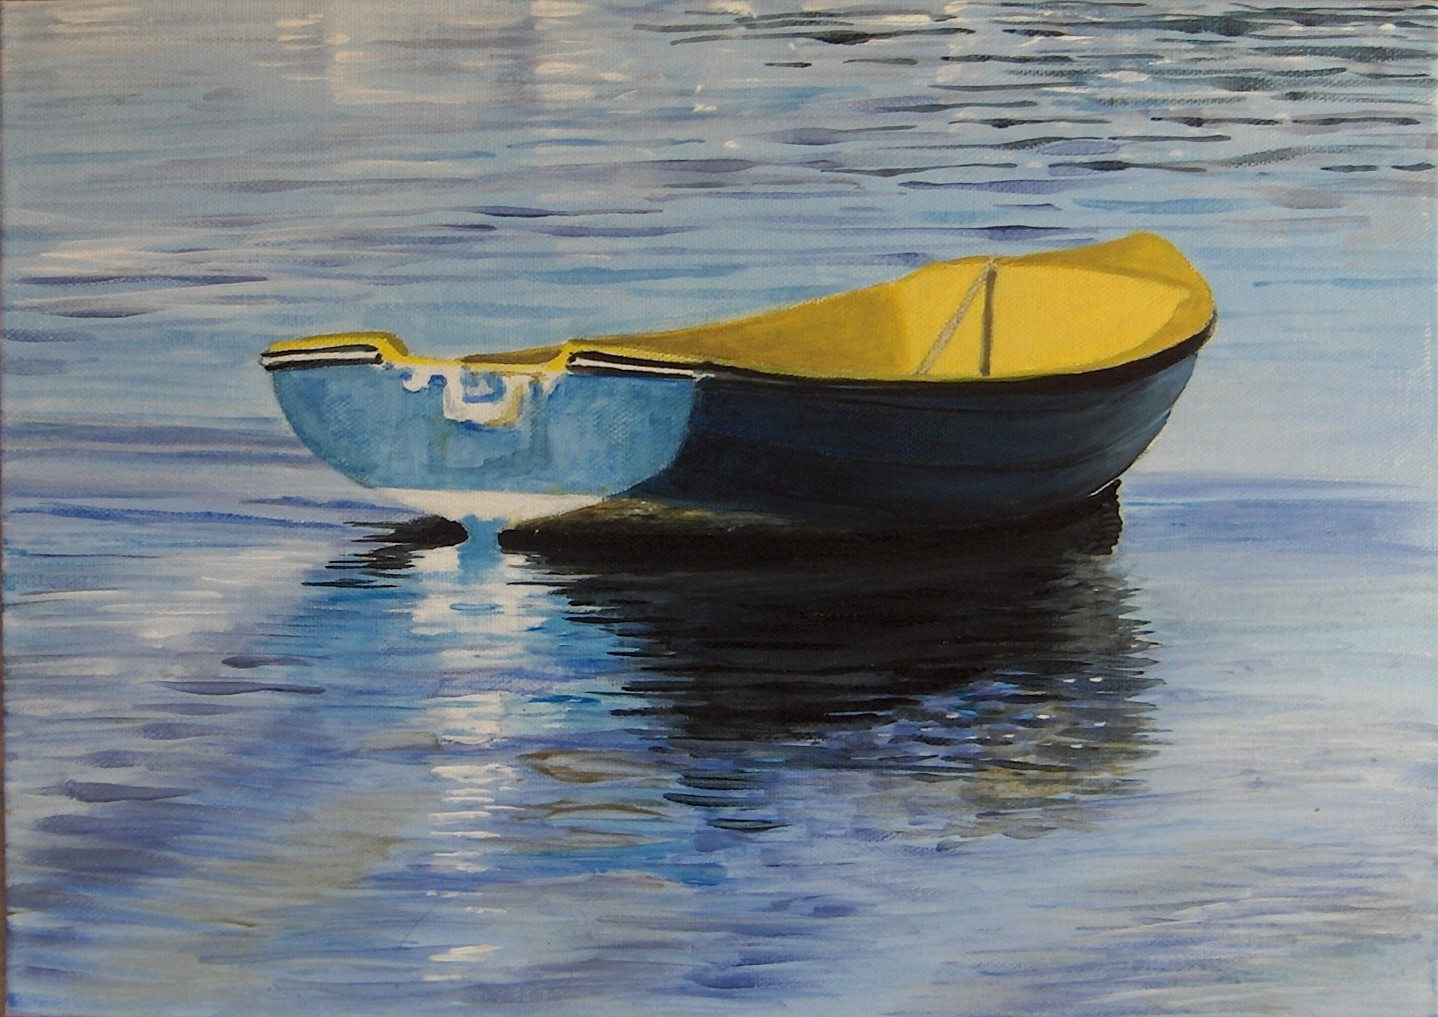 Blue Dinghy